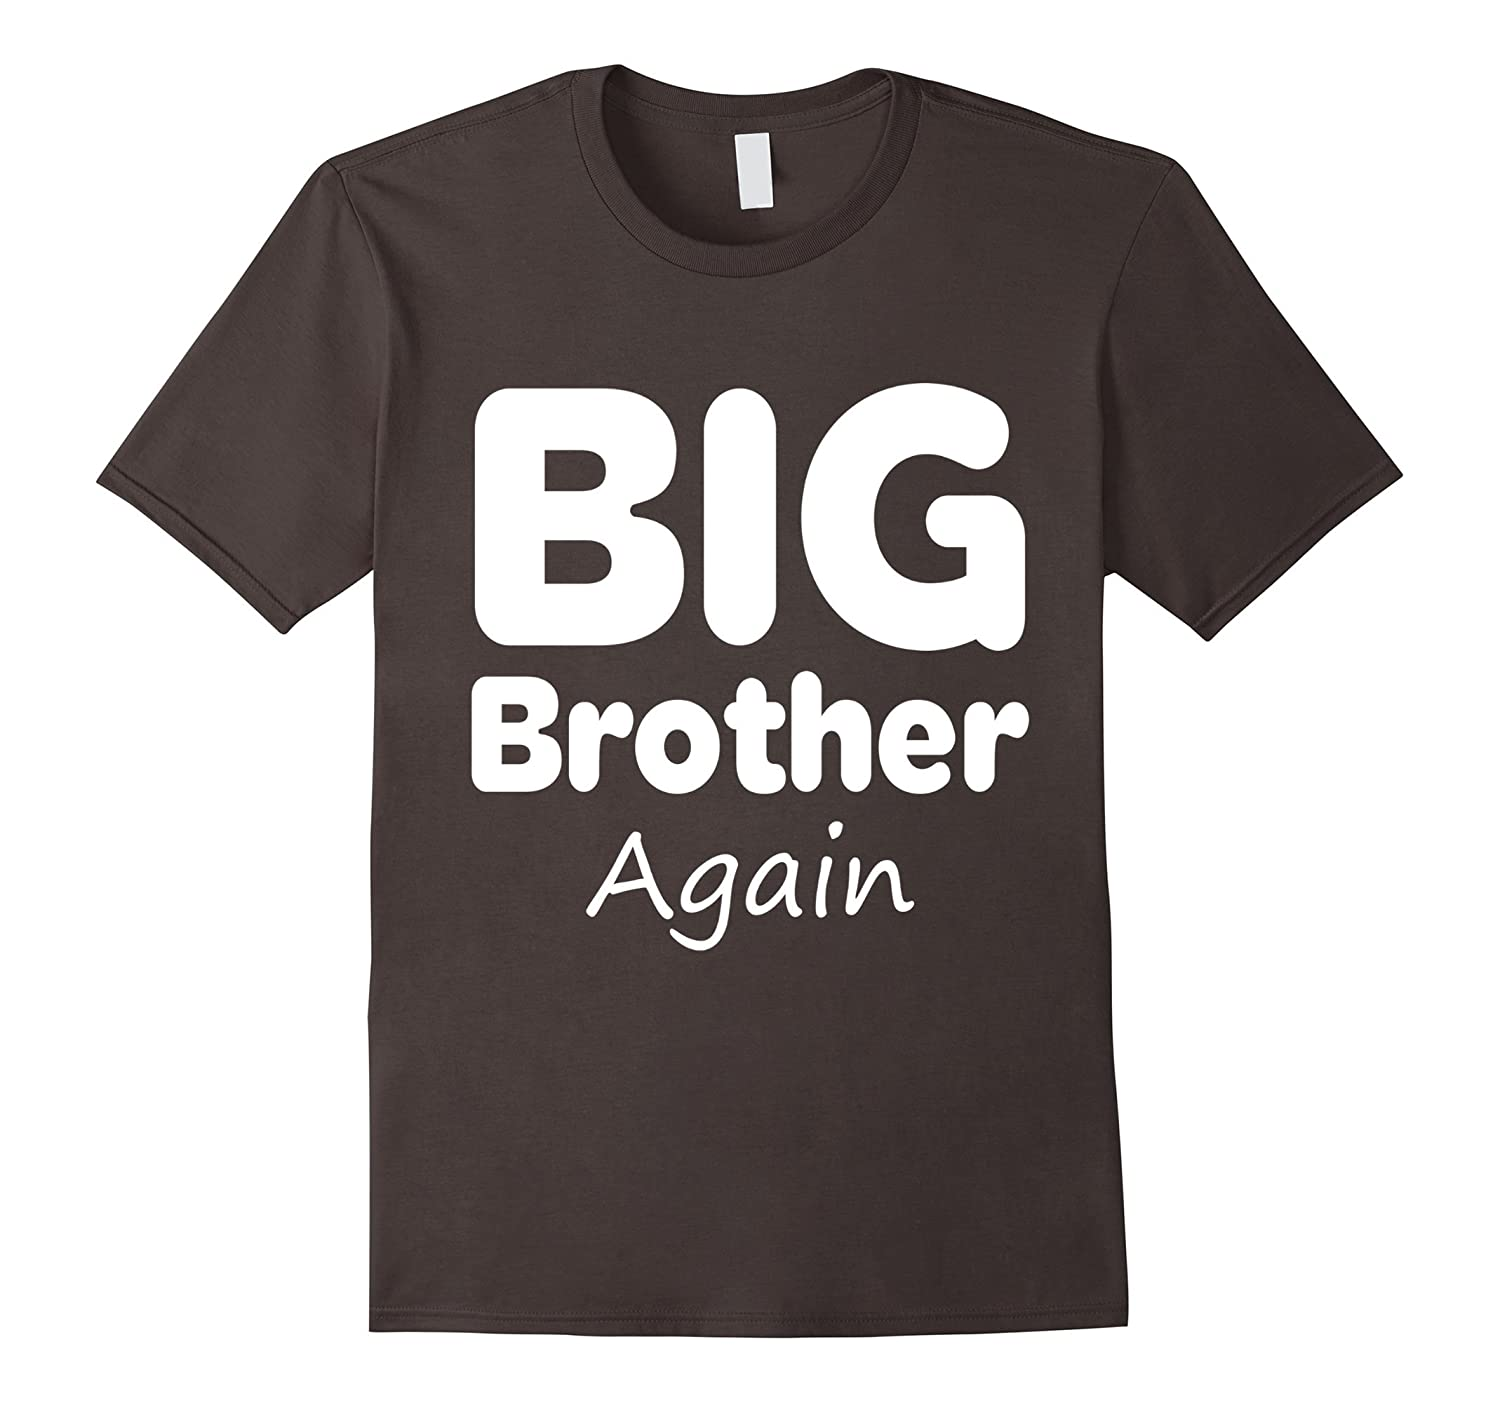 Big Brother Again Shirt Kids Son New Baby Pregnant Mom Dad